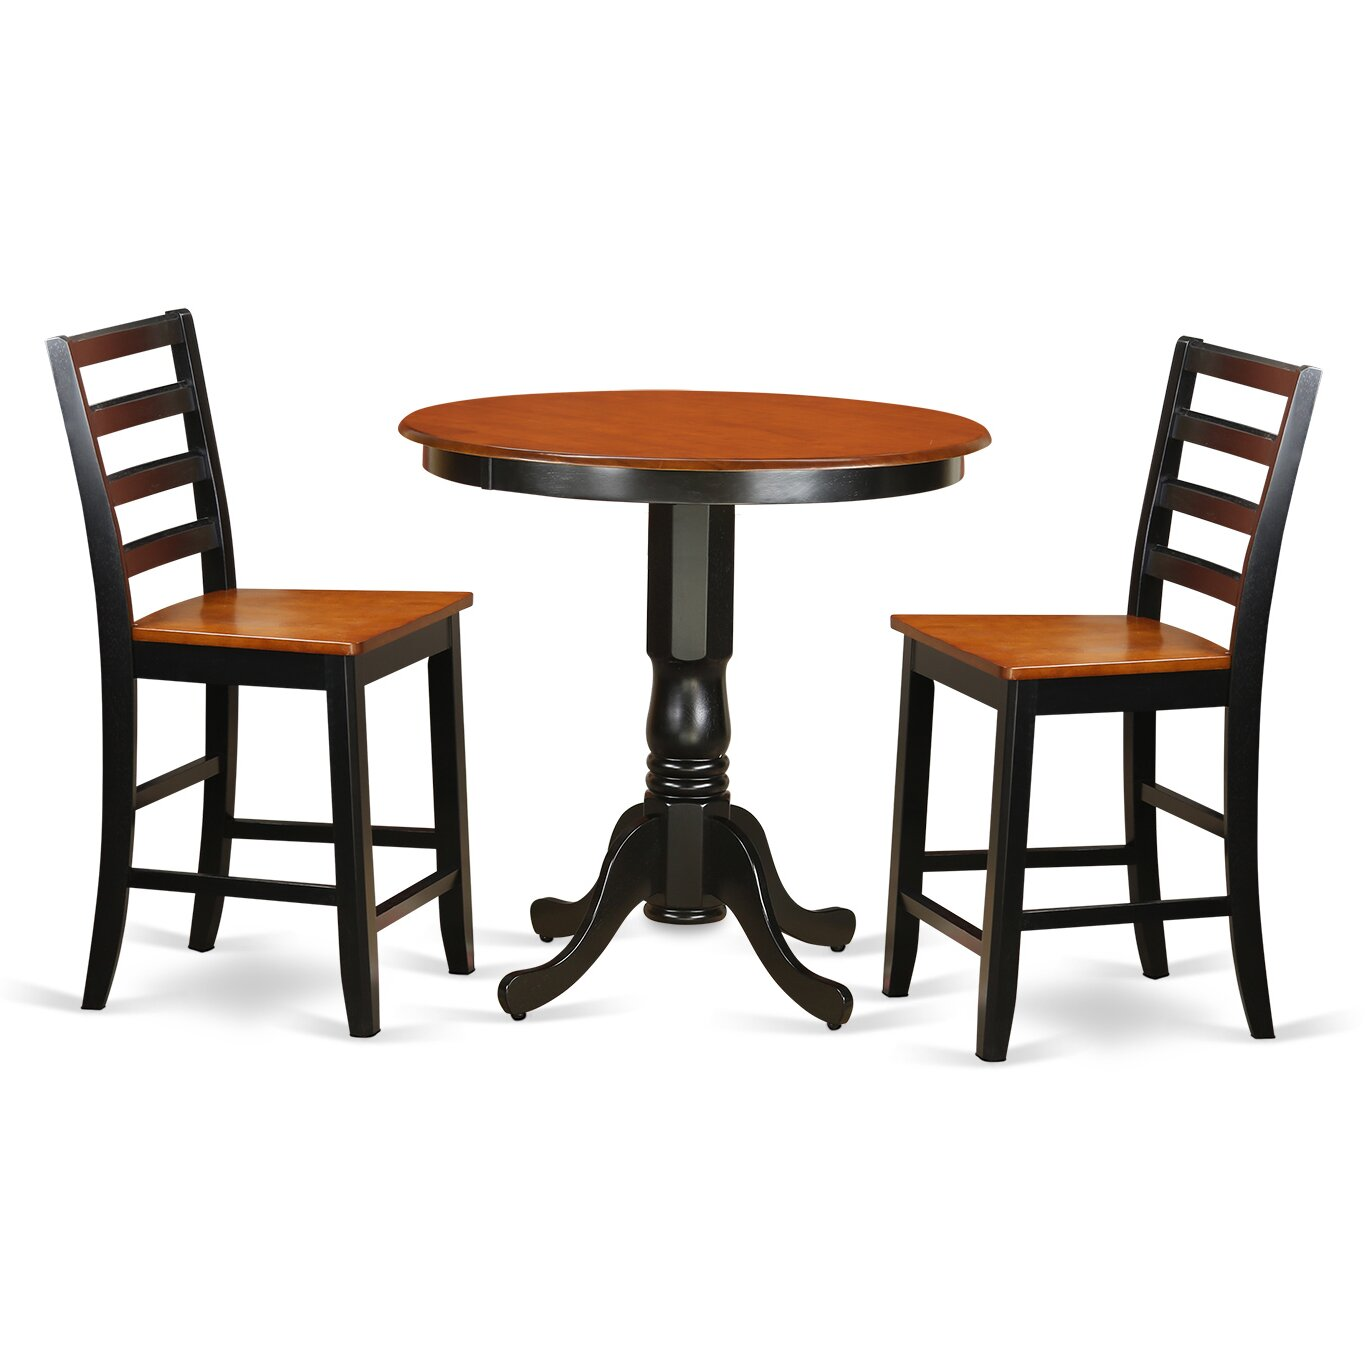 Wooden importers jackson 3 piece counter height pub table for Table and chair set